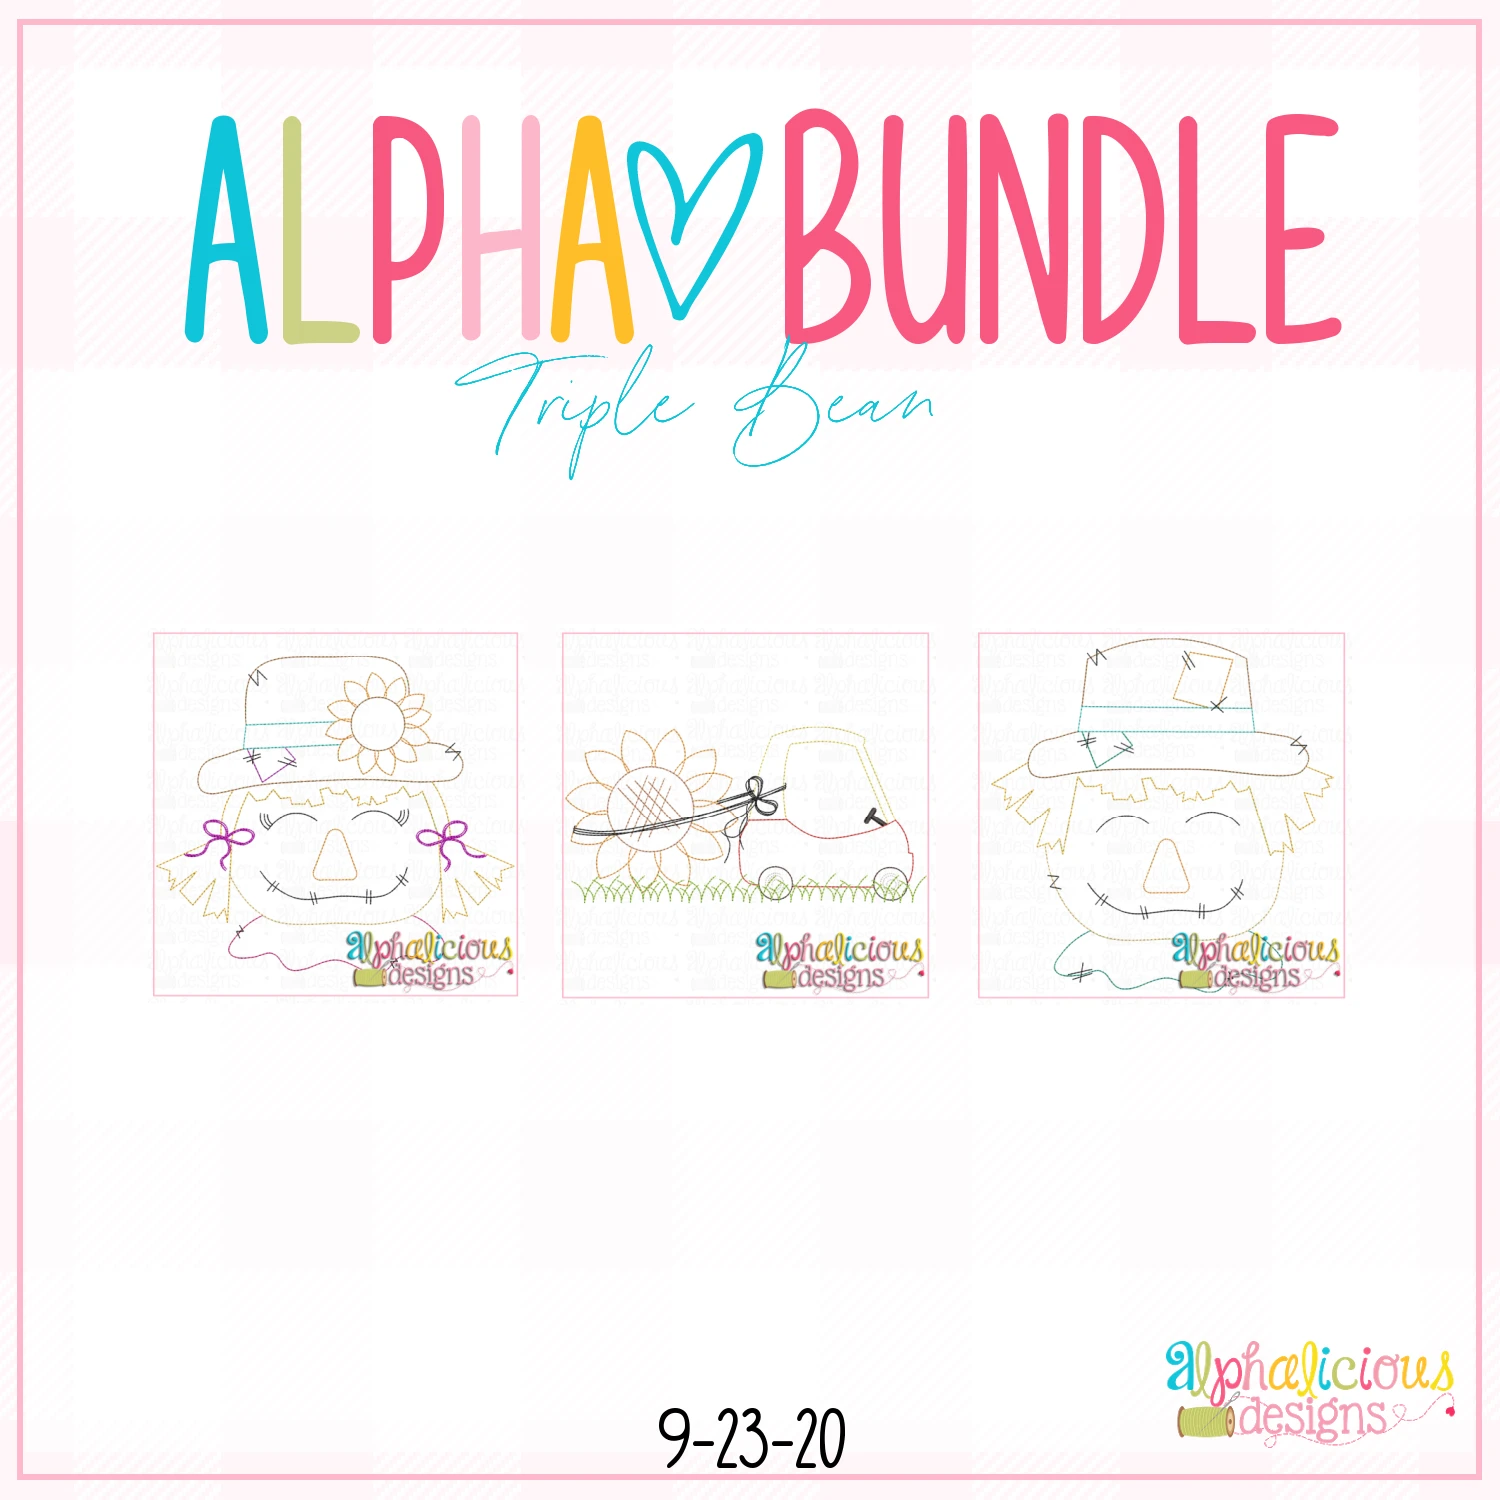 ALPHA BUNDLE-9/25/20 Release-Triple Bean Stitch